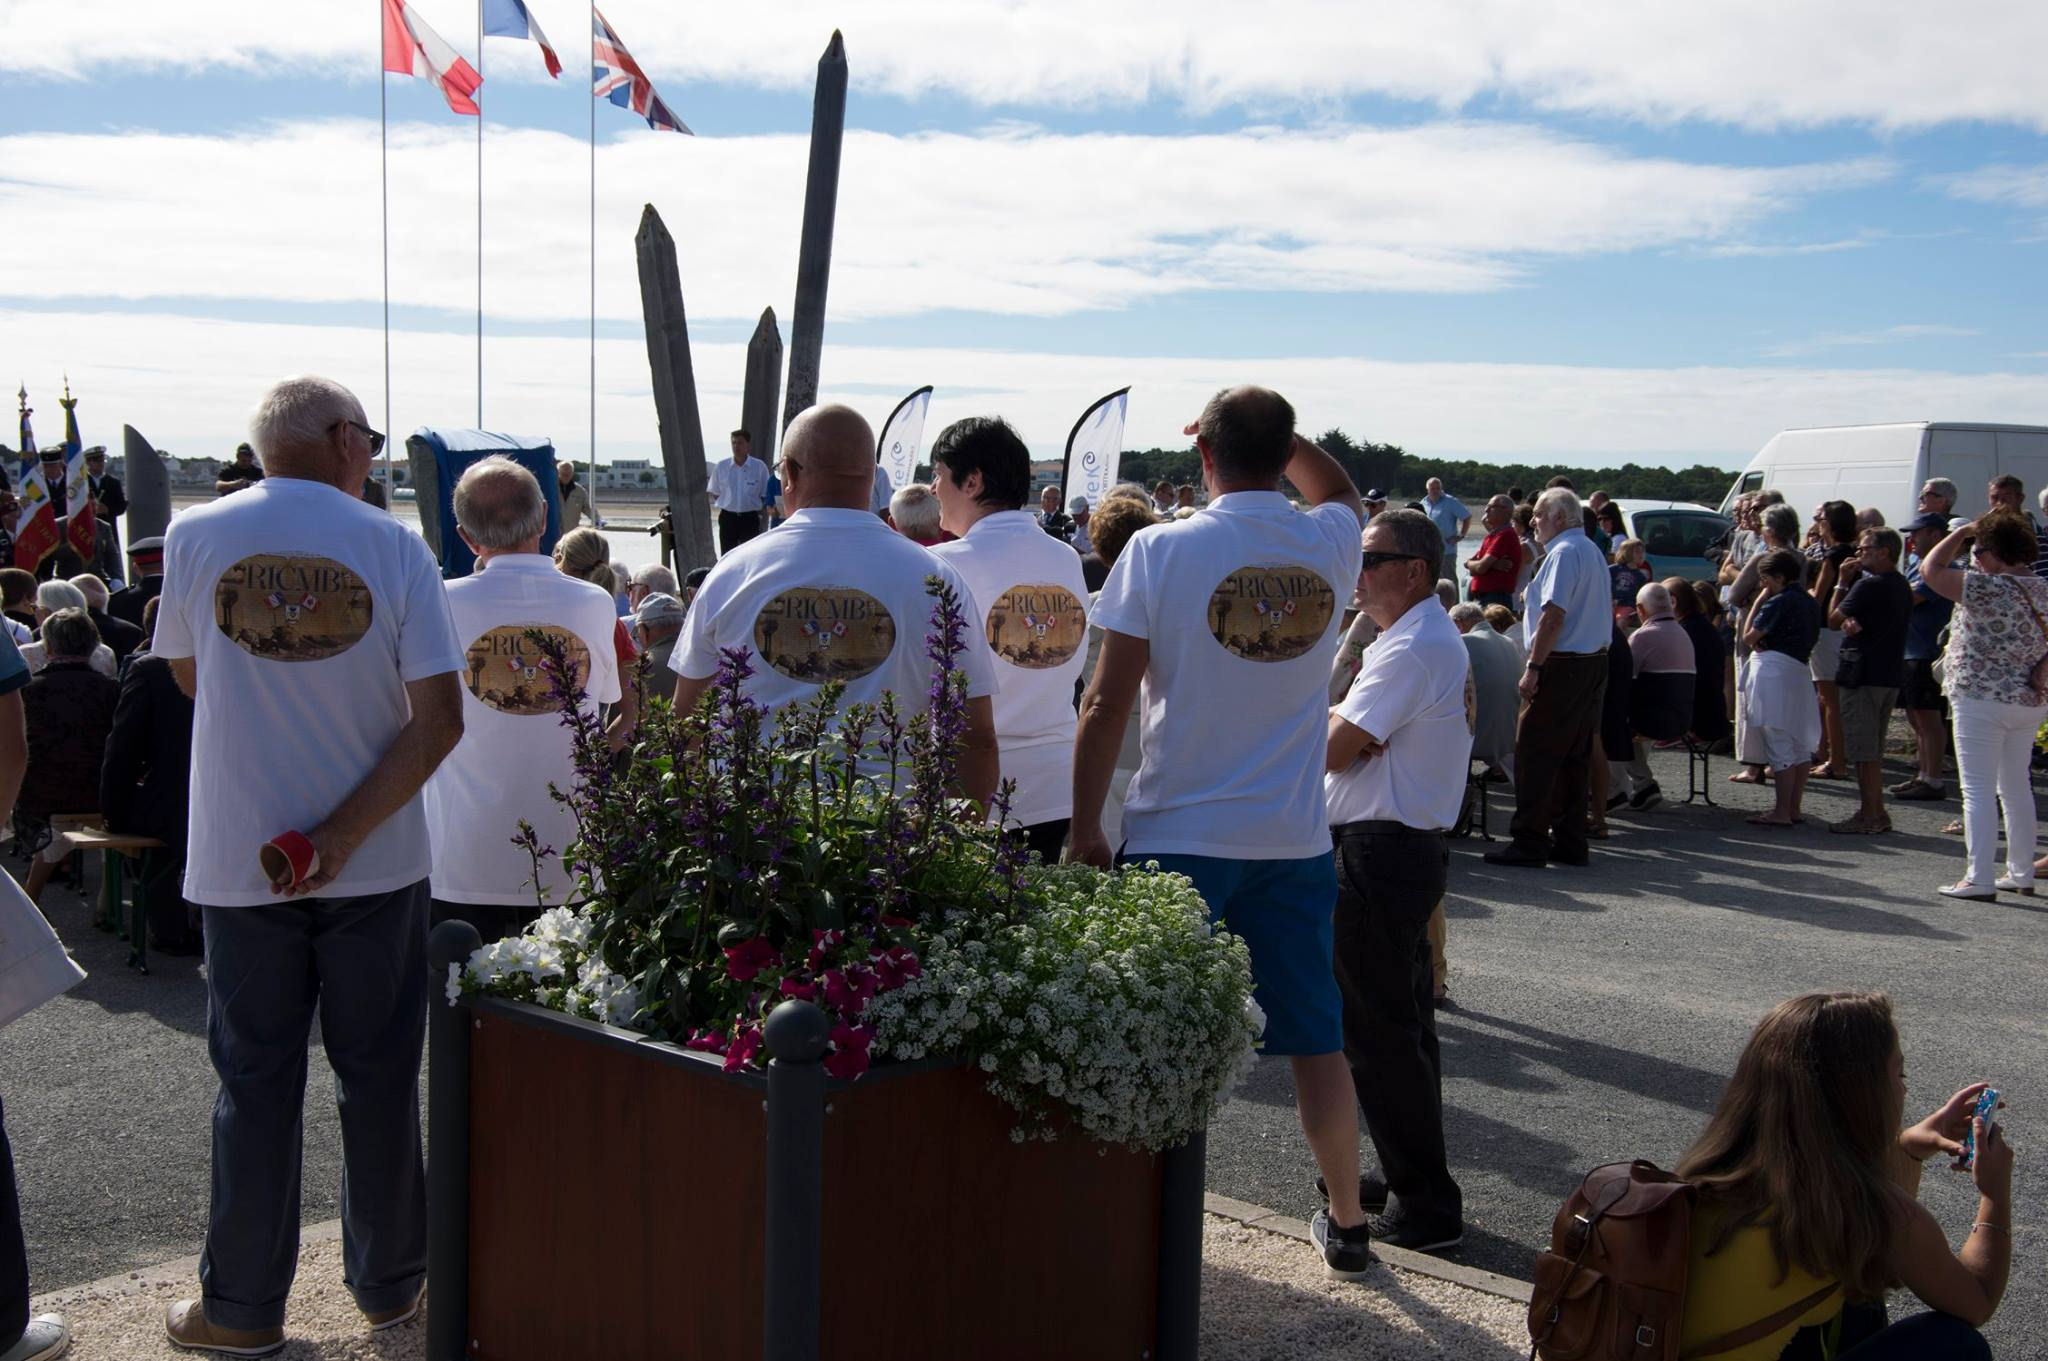 Ceremony – Photo of the commemorative ceremony on August 6, 2016, in Barbâtre, Île de Noirmoutier, France.